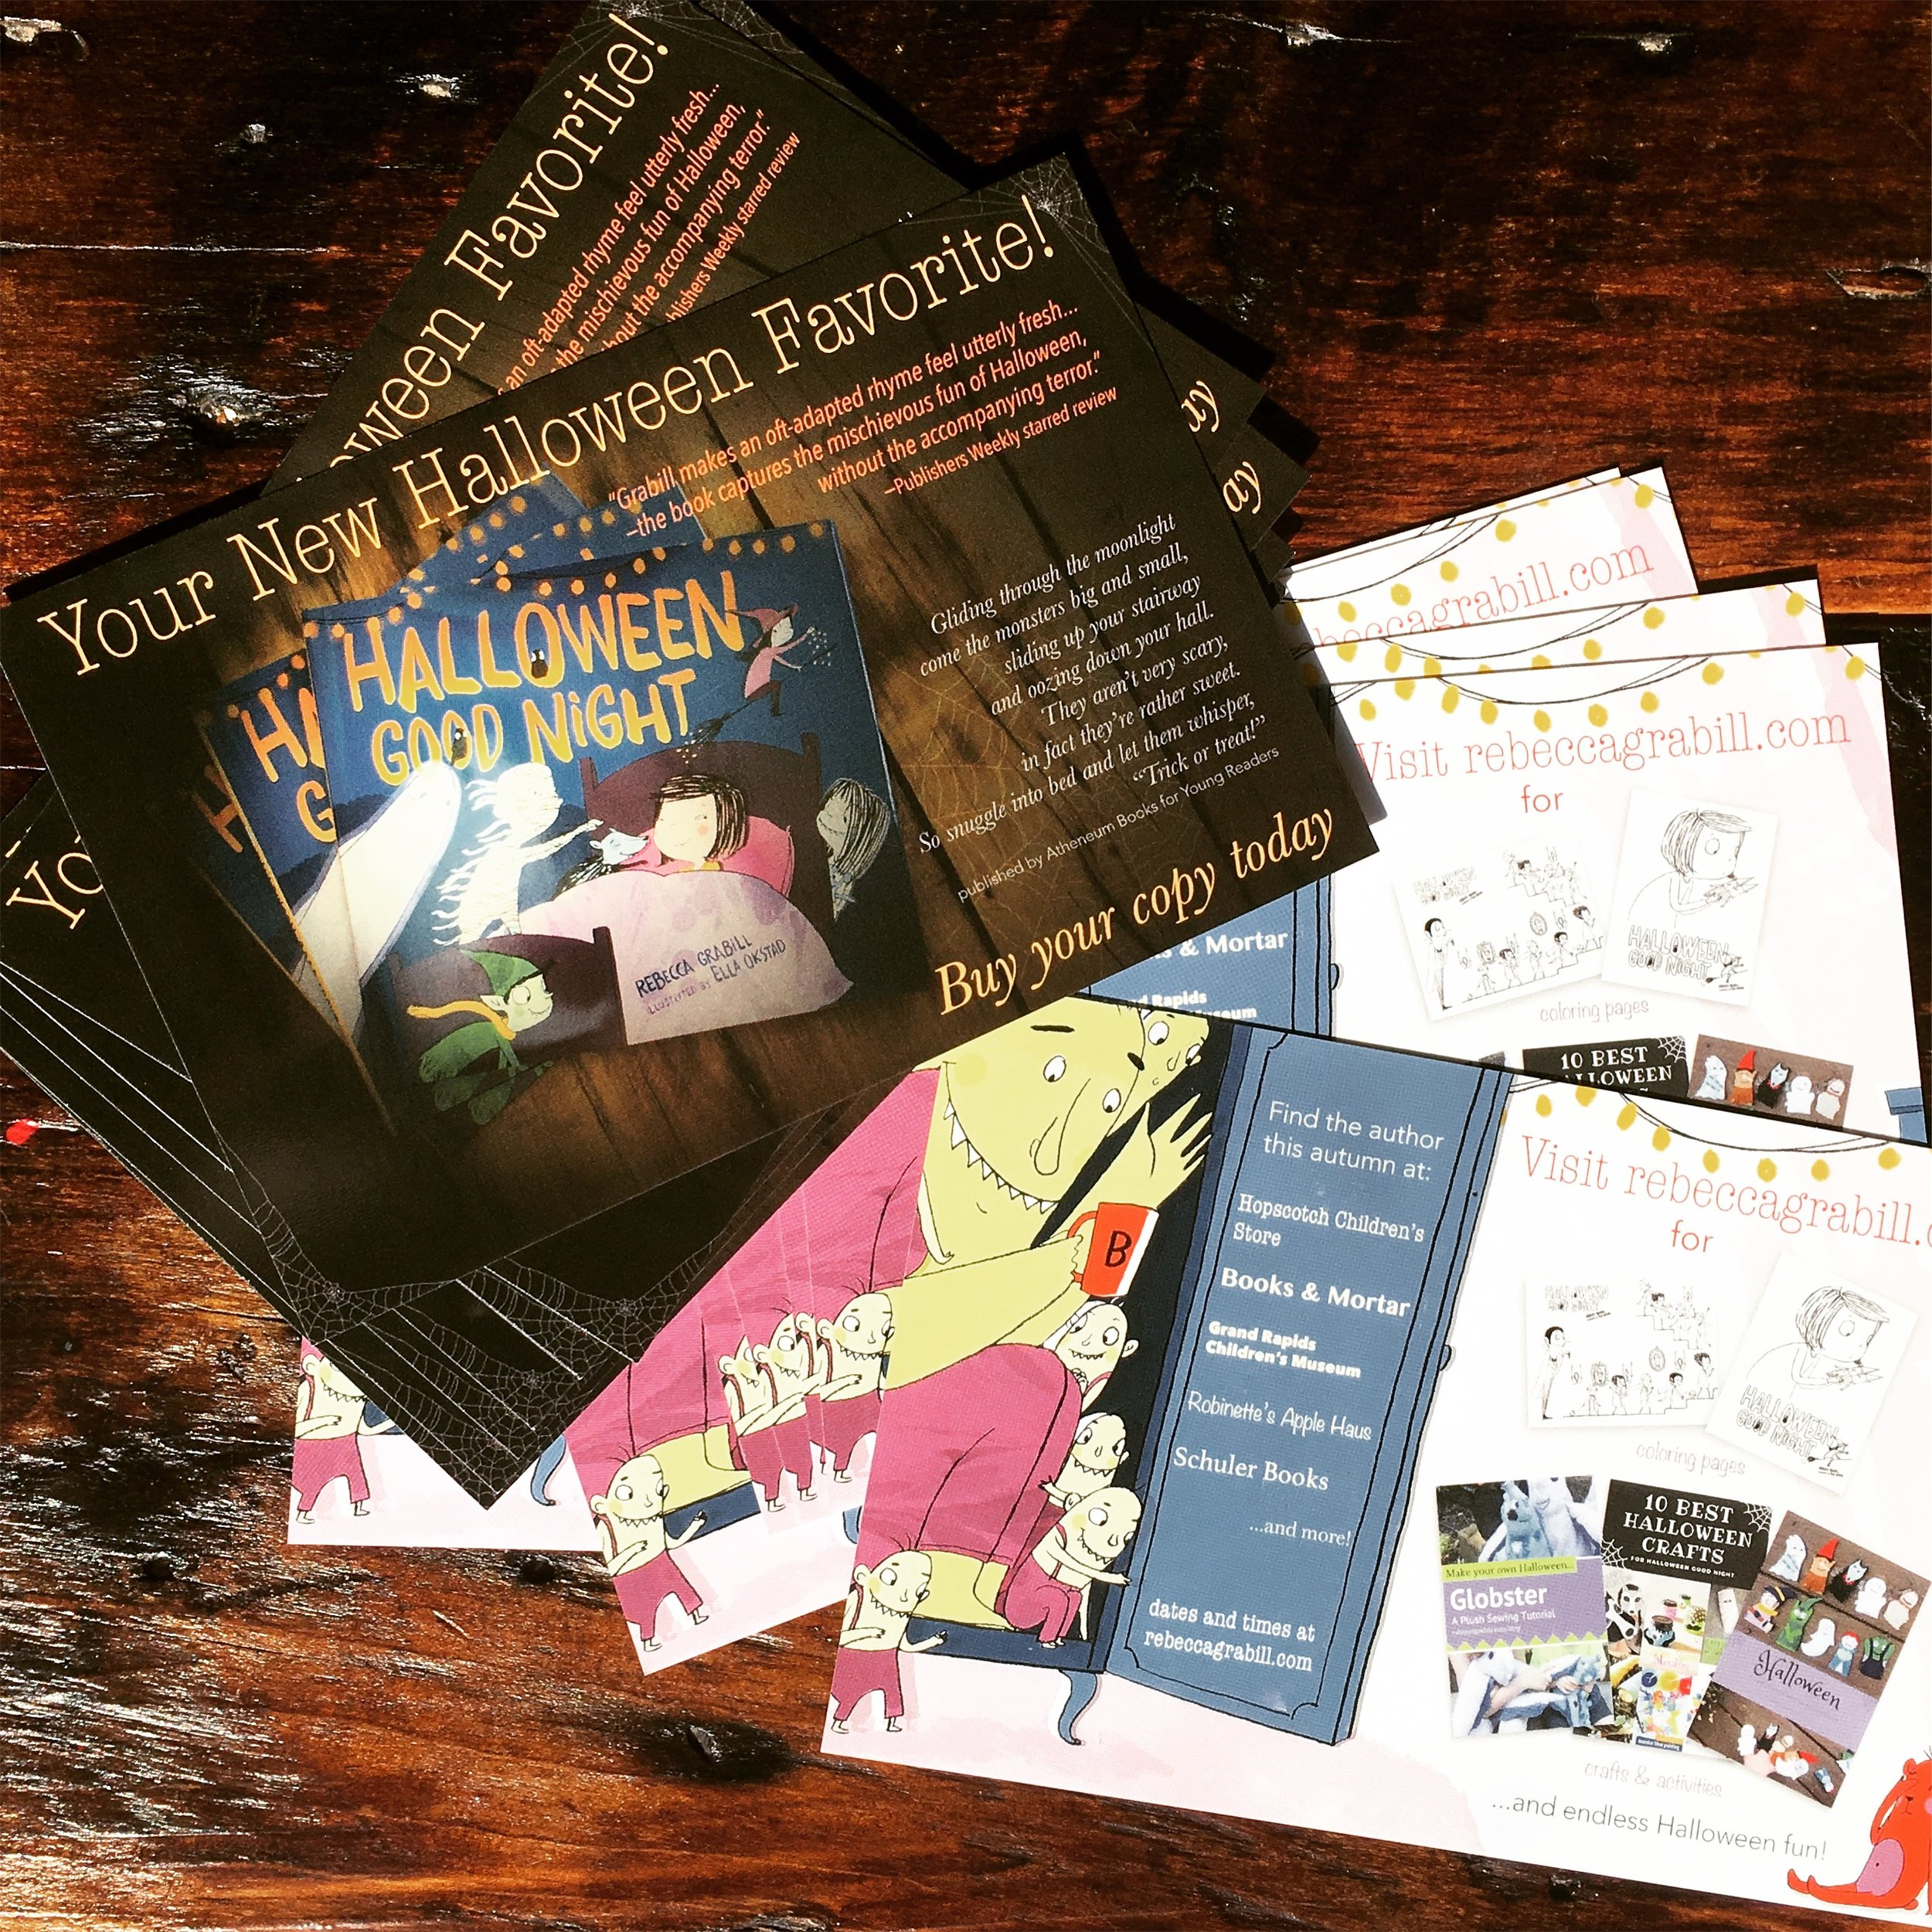 Halloween Good Night by Rebecca Grabill author postcards.